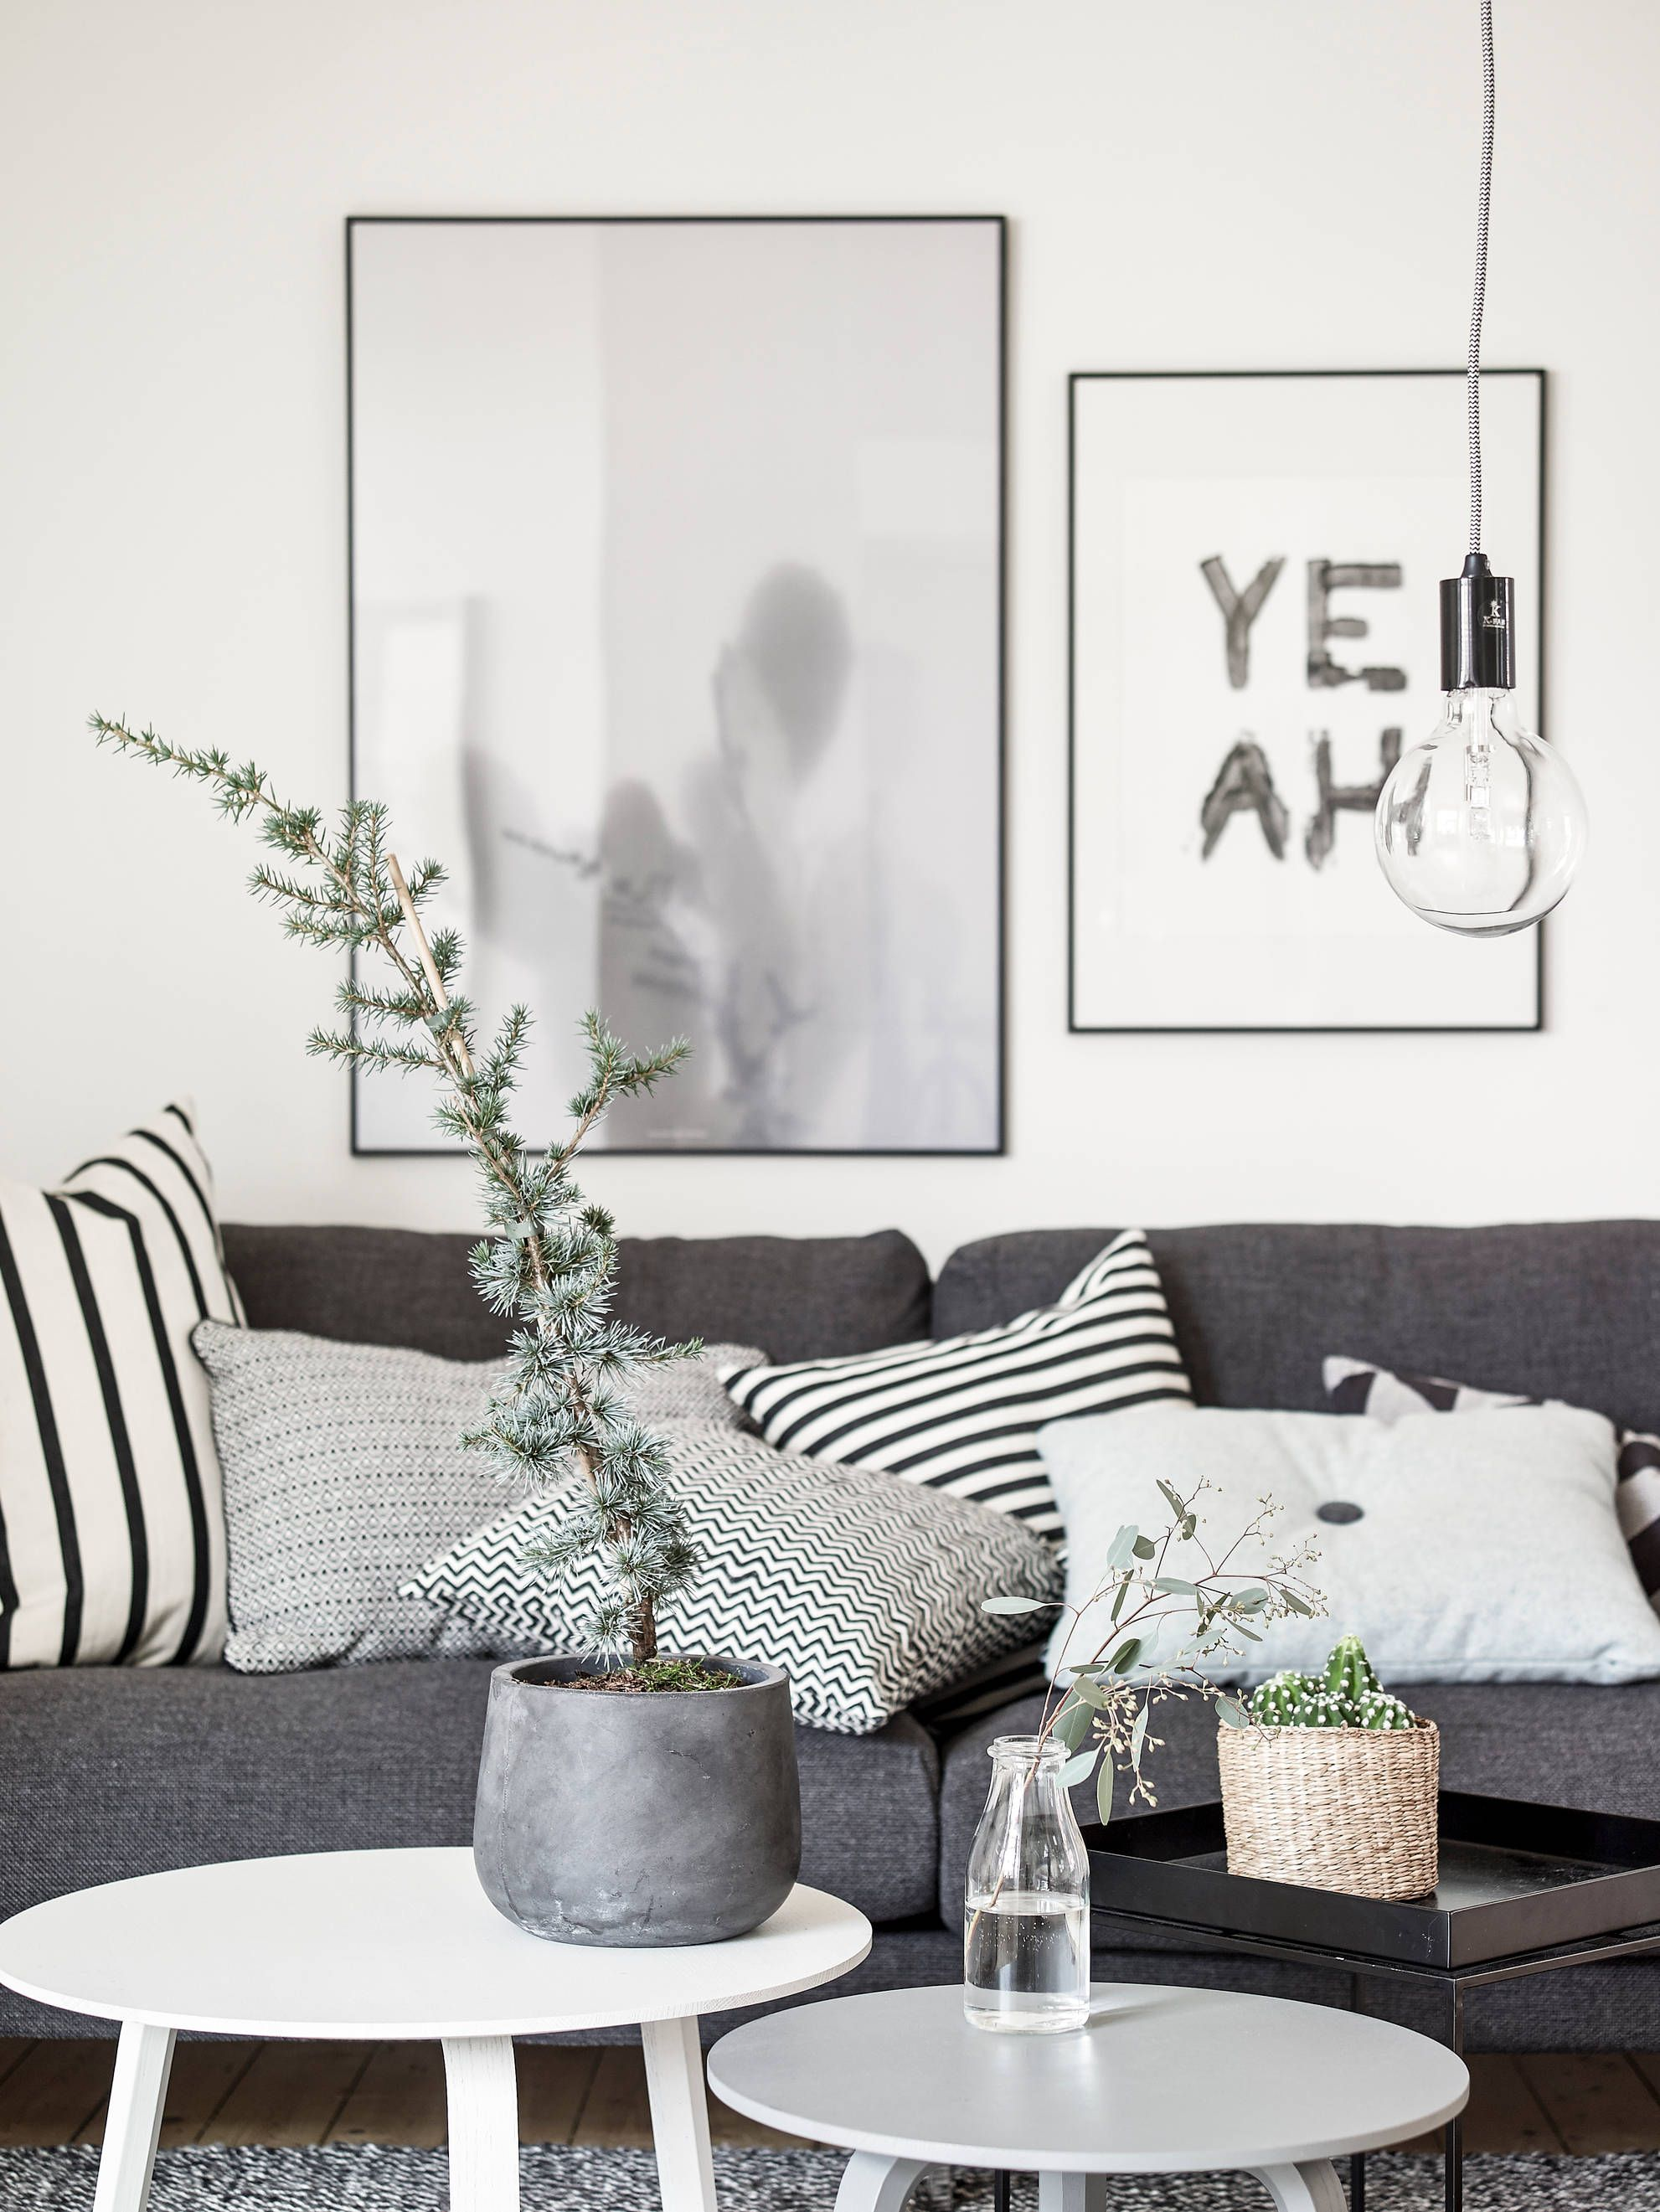 Monochrome living room collection of black and white cushions